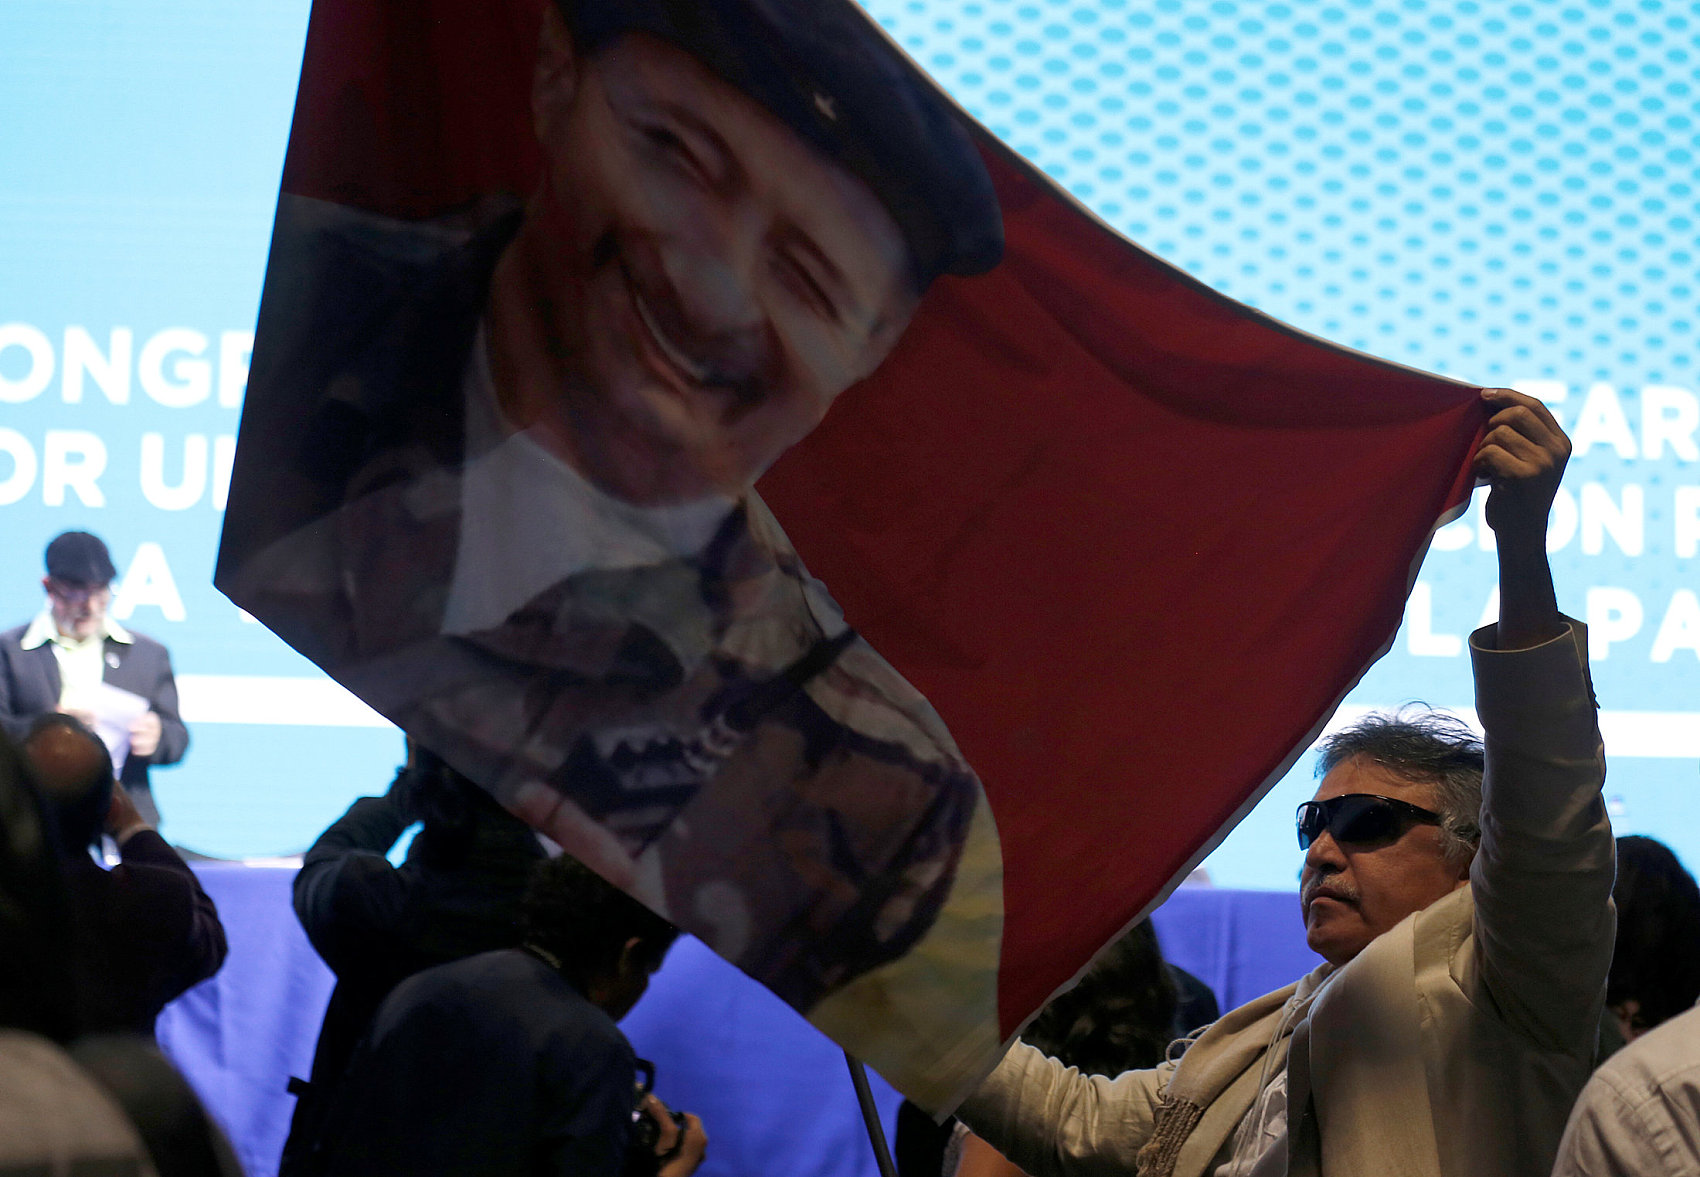 Colombia faces questions over whereabouts of former FARC rebel leader